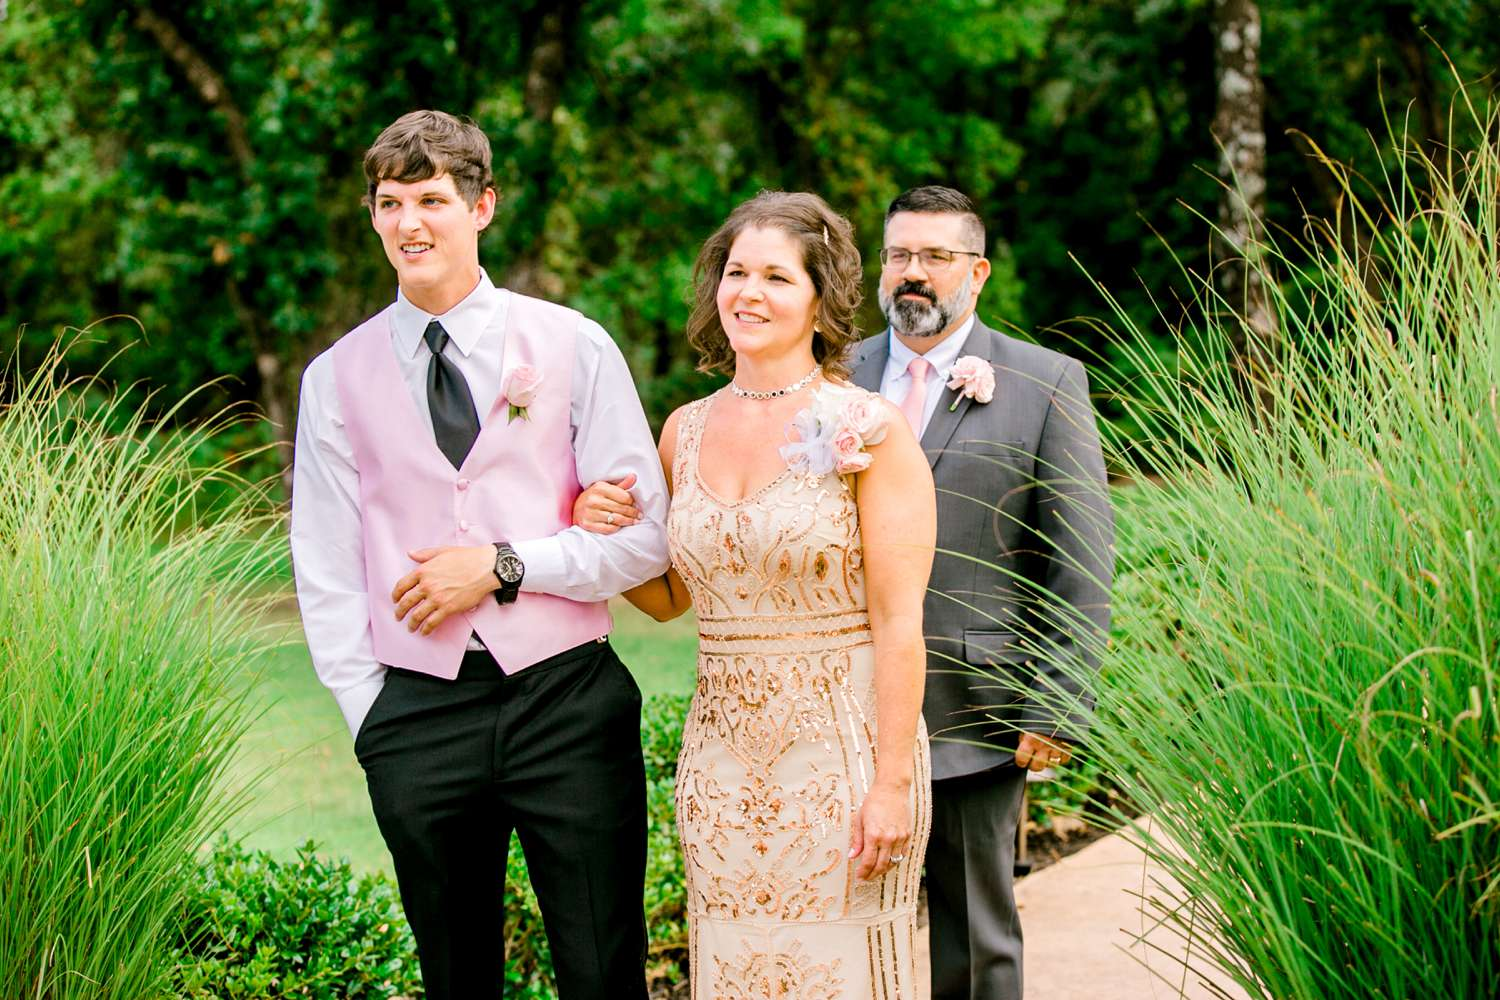 JESSICA+LYLE+NEEL+THE_SPRINGS_EVENTS_WEDDING_OKLAHOMA_ALLEEJ_PHOTOGRAPHER_0041.jpg